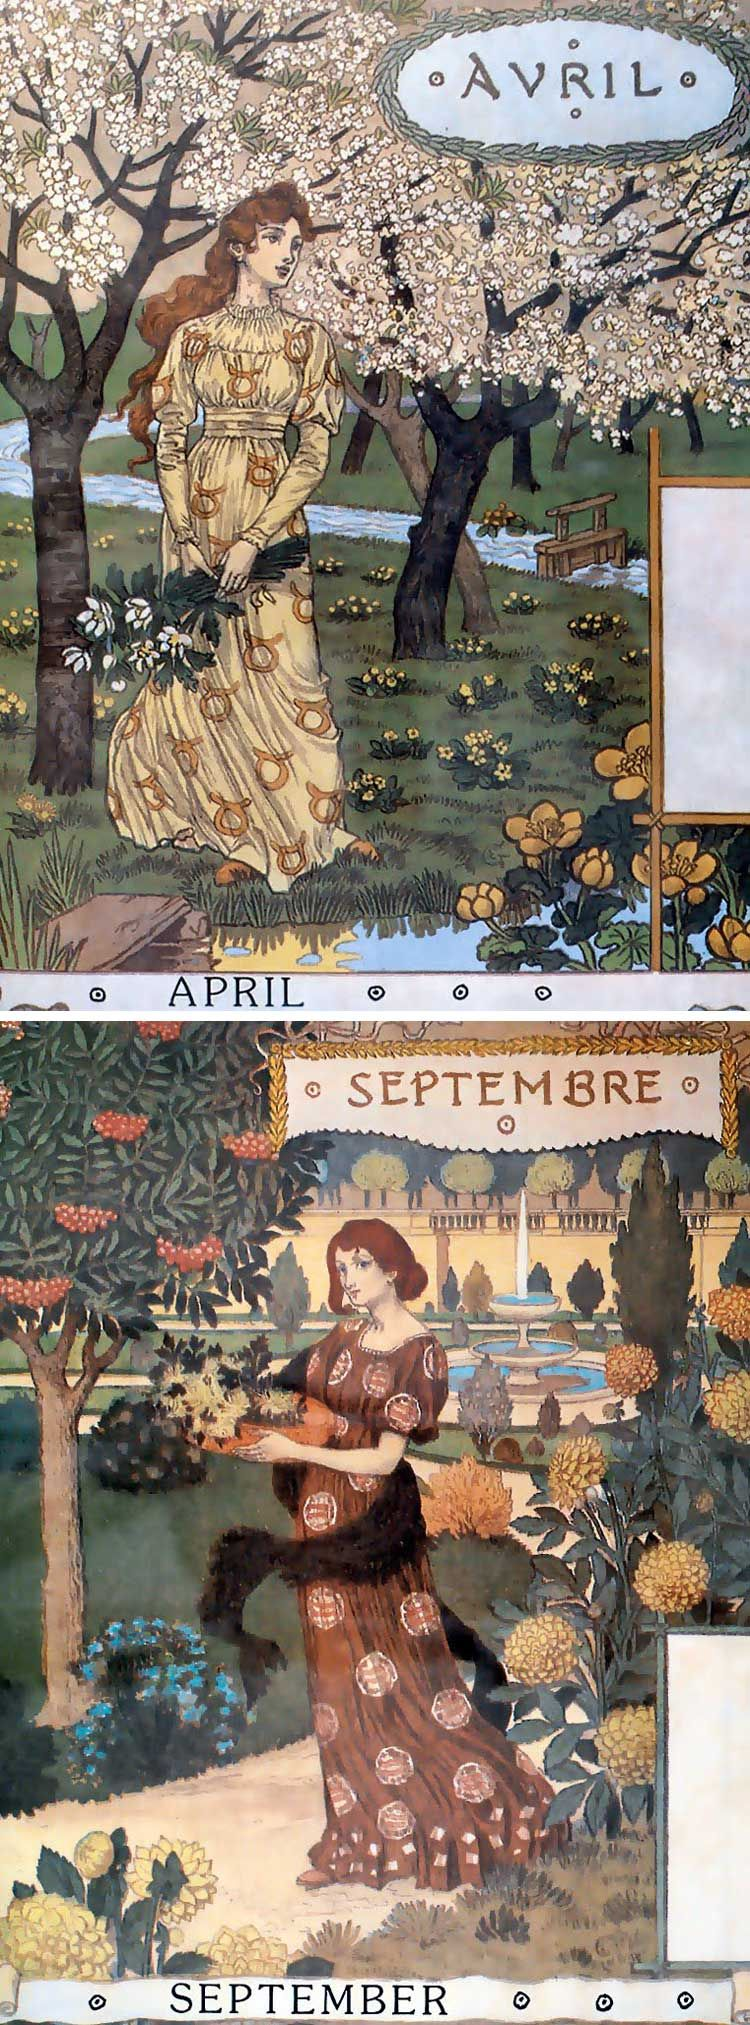 Calendar Reform Ideas : From a calendar called quot la belle jardinière illustrated